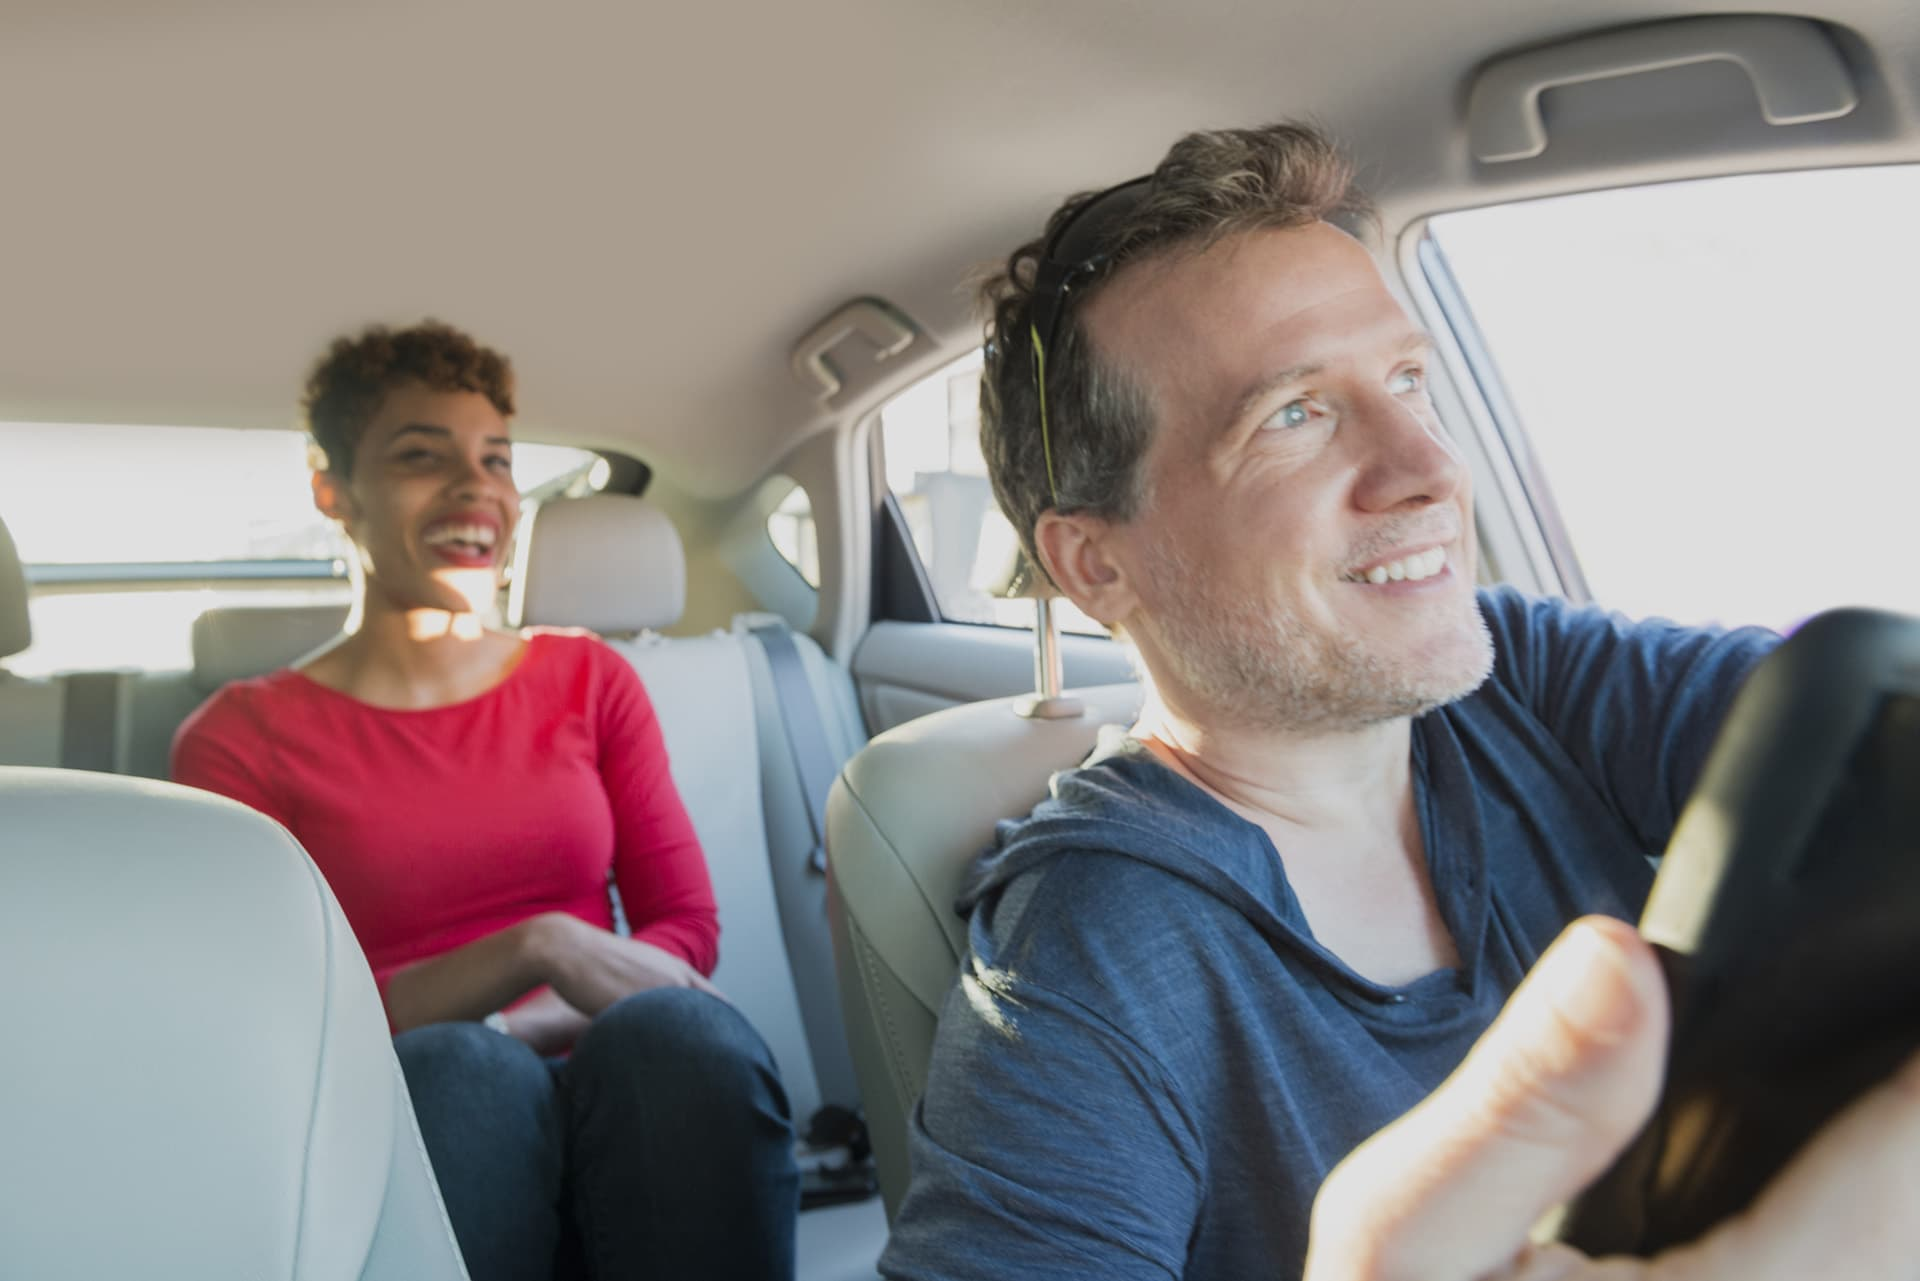 Ride-sharing insurance for male driver with female passenger in the back of his car